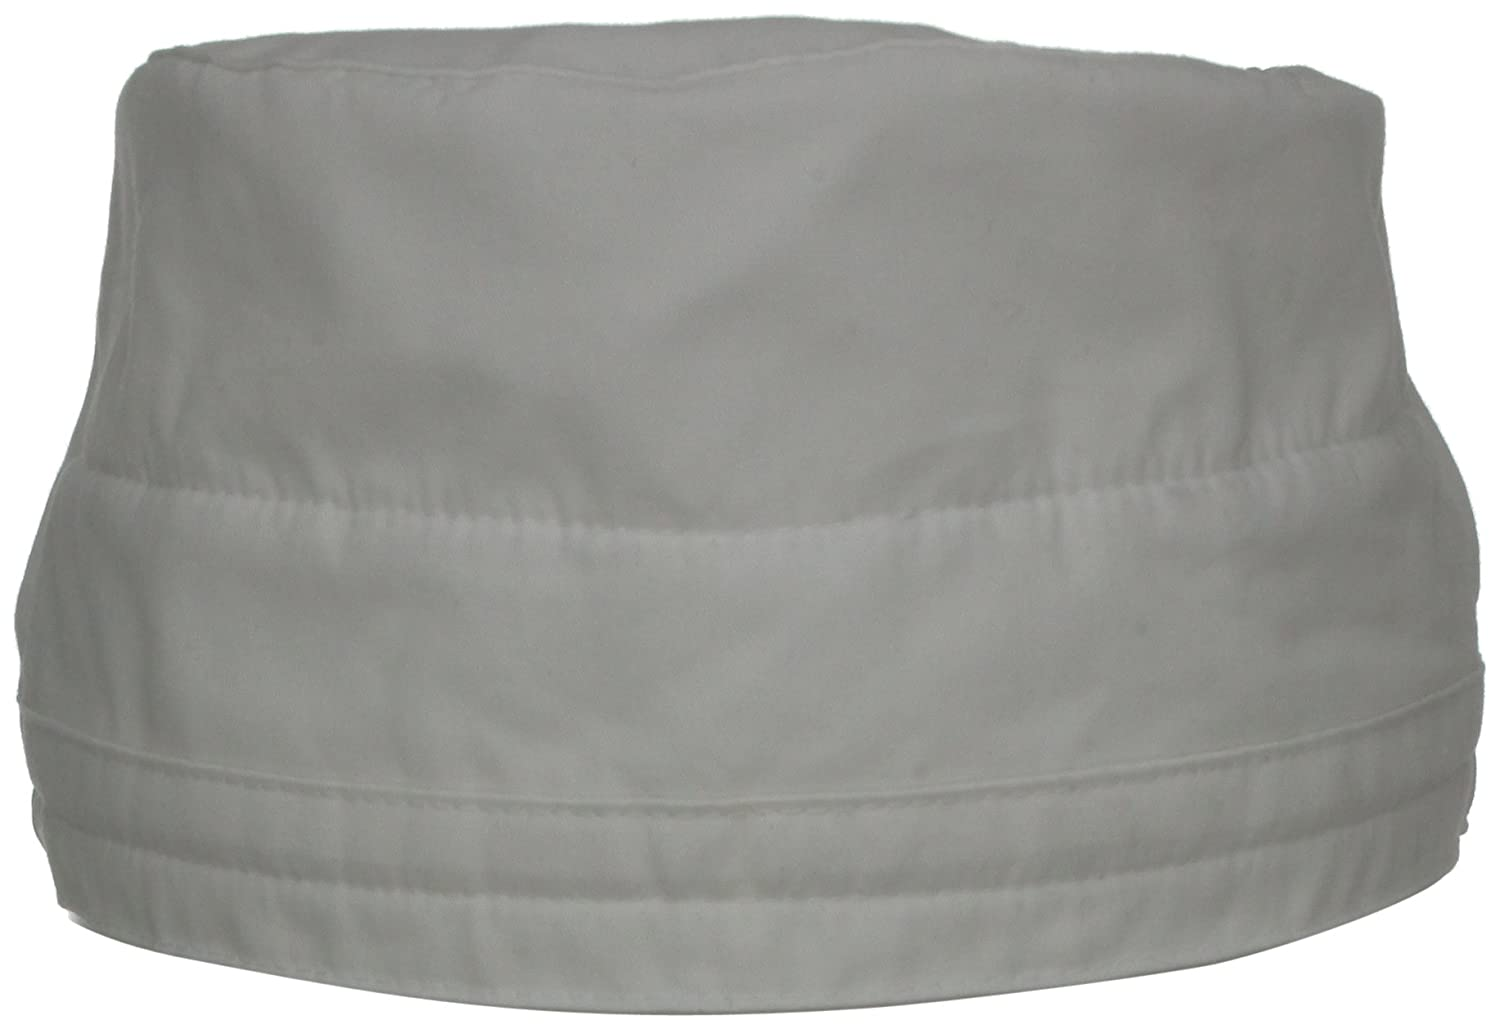 227ee63ef71 Amazon.com: Mary Engelbreit Women's Solid Scrub Cap, White, One Size:  Apparel Accessories: Clothing